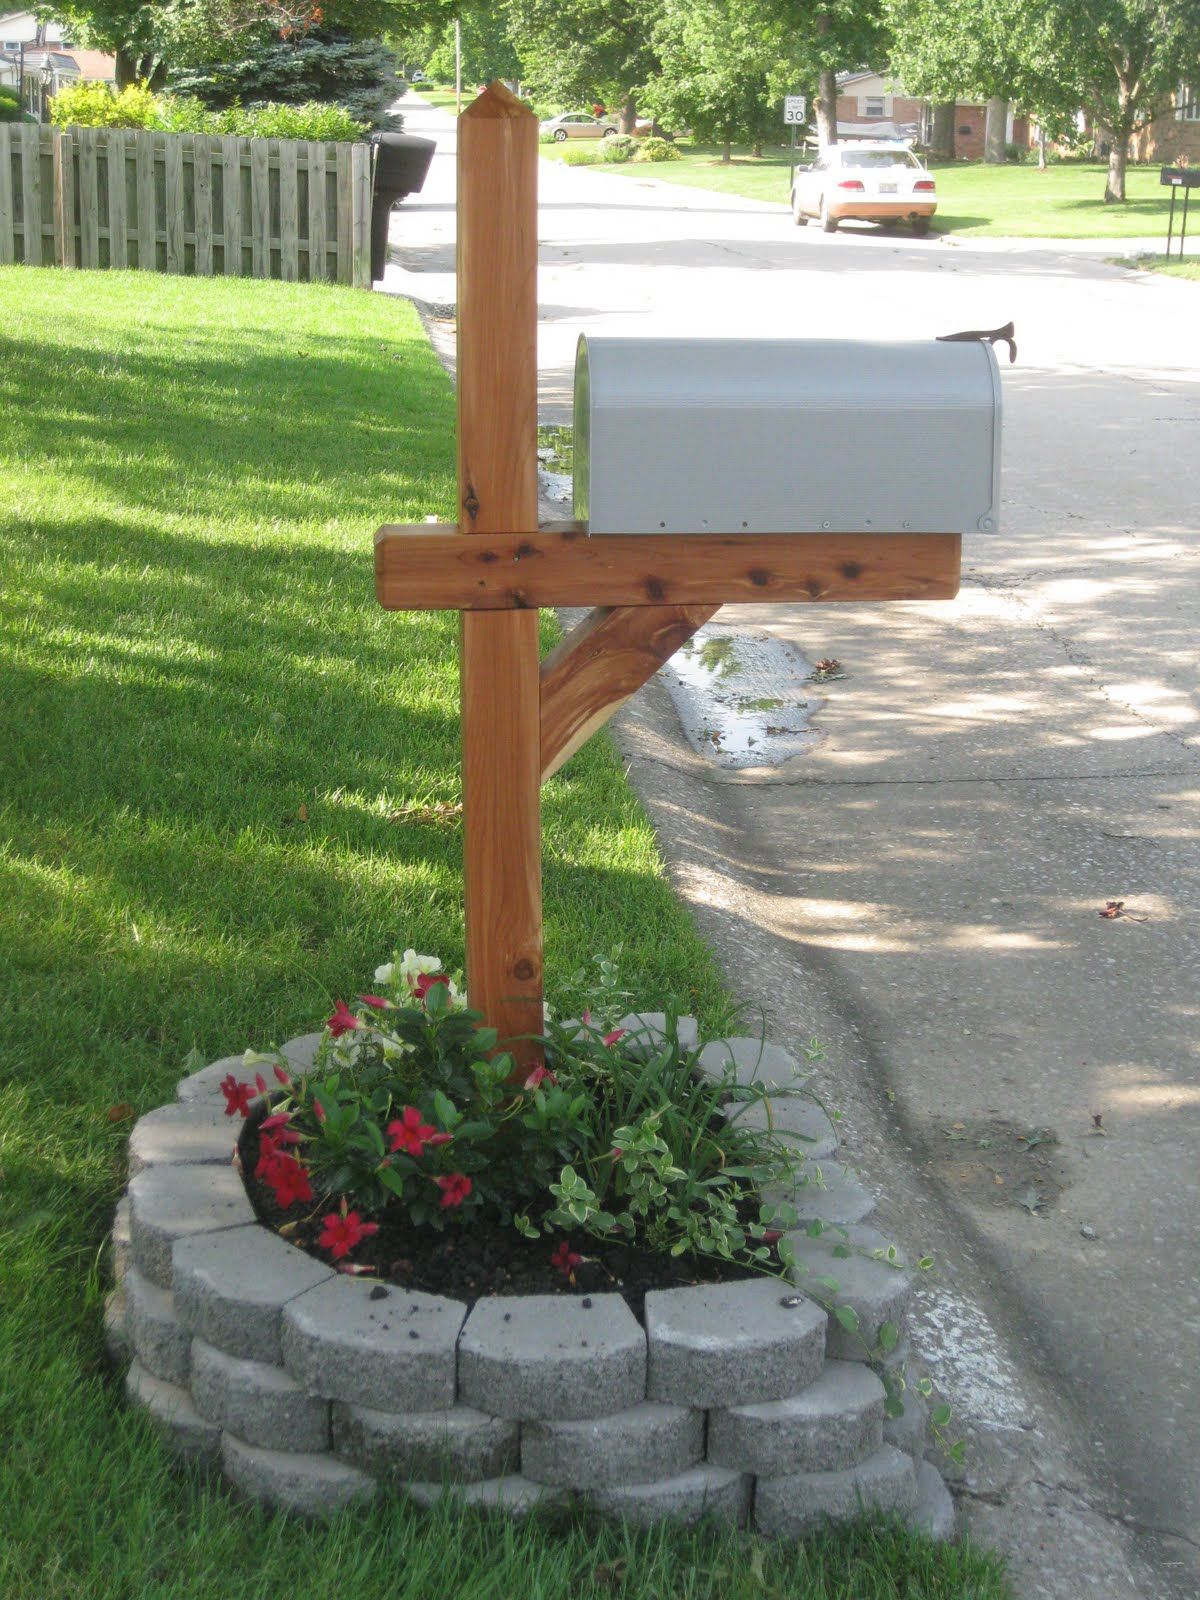 Mailbox Garden  Spruce Up Your Mailbox With Some Flowers By Creating A Base  Garden With Retaining Wall Blocks.